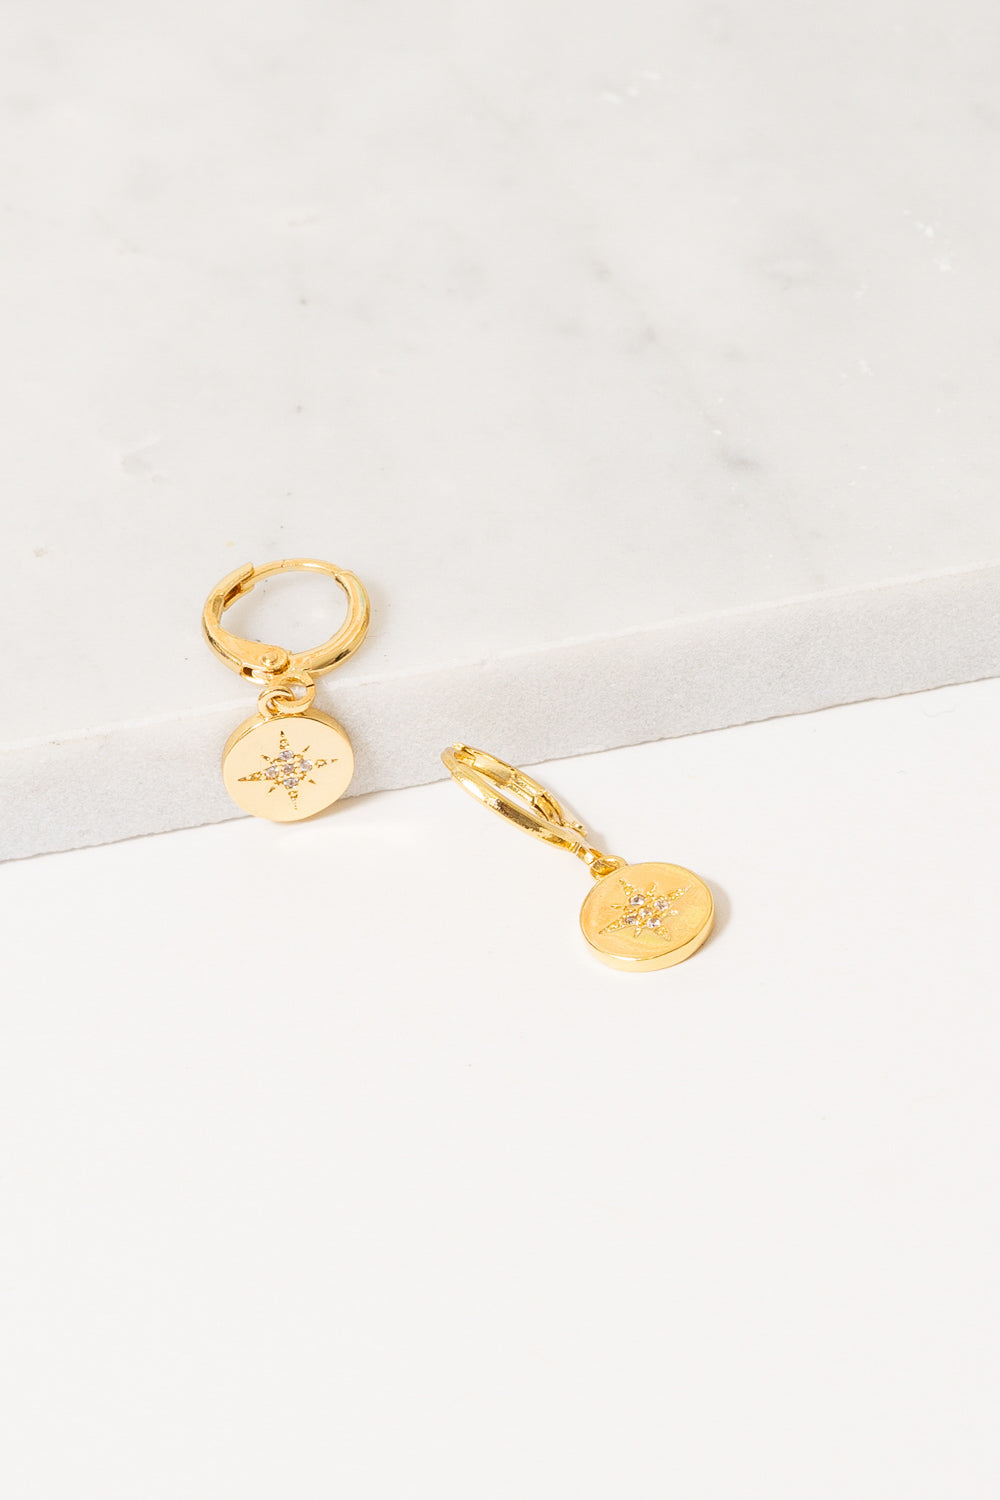 gold huggie hoops with starburst charm dangles by janna conner